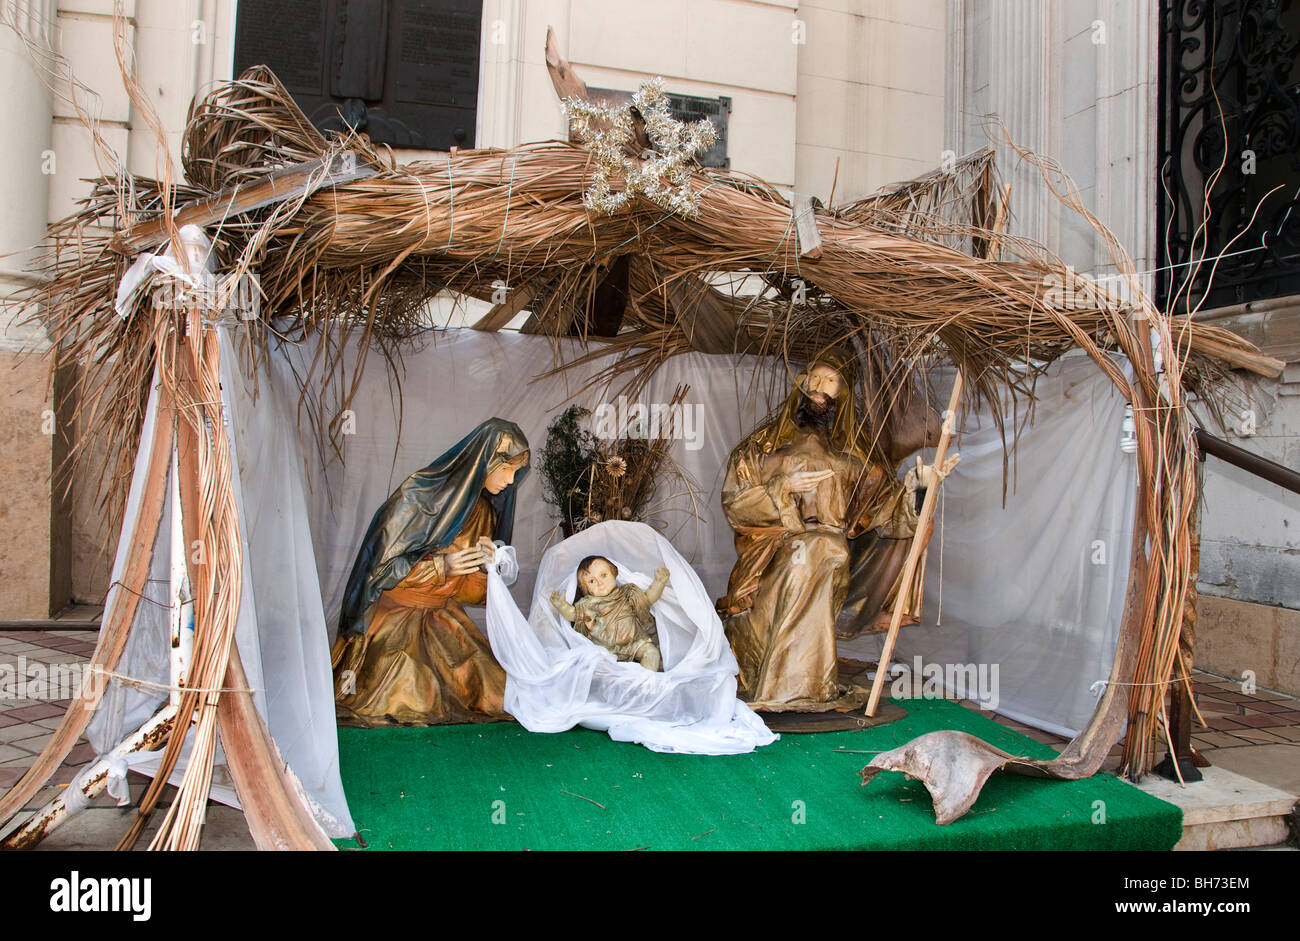 Christmas Xmas crib Buenos Aires the Cabildo former government house Plaza de Mayo Argentina - Stock Image